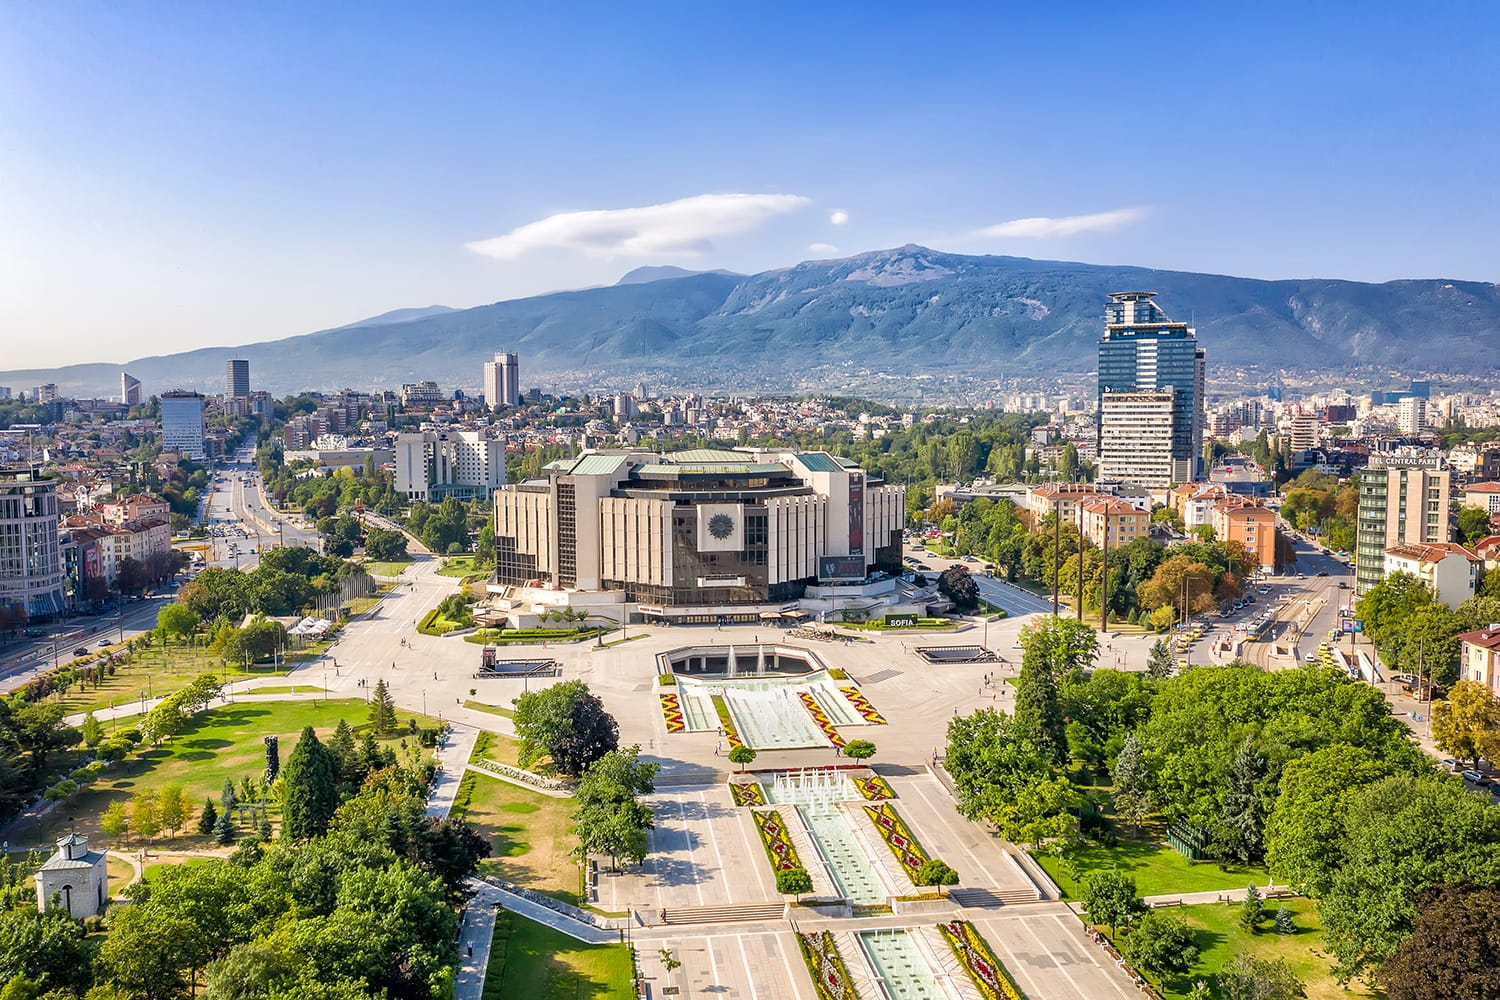 Amazing aerial view of National Palace of Culture in the city of Sofia, capital of Bulgaria